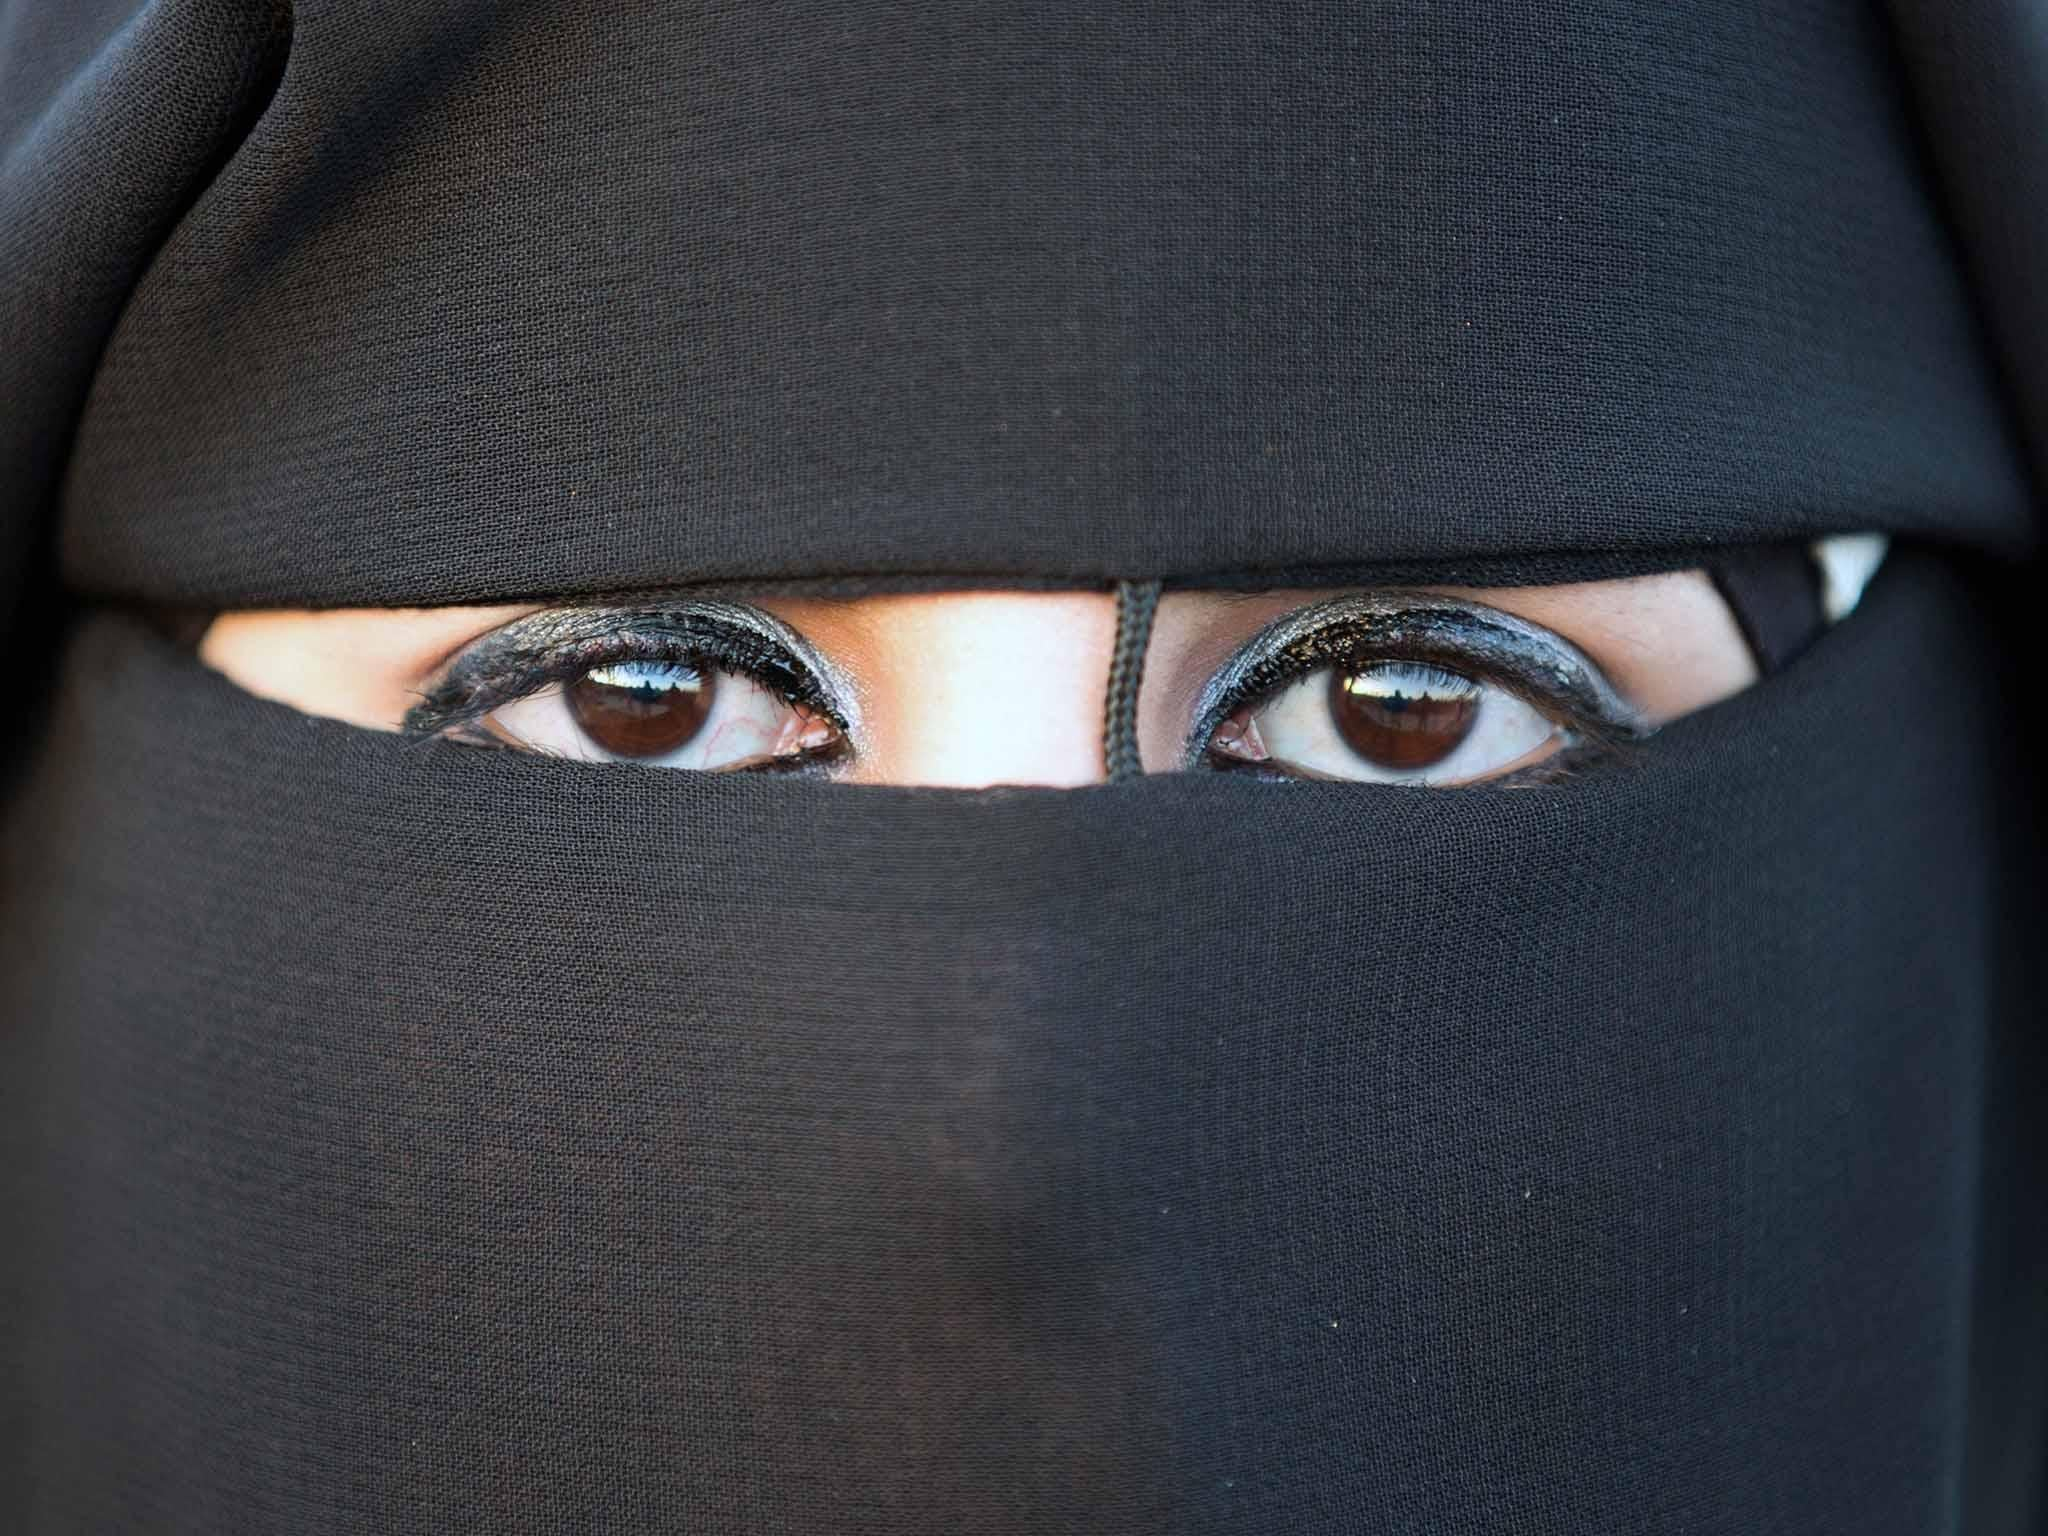 EU citizen deported to Tunisia from Brussels after refusing to remove her niqab